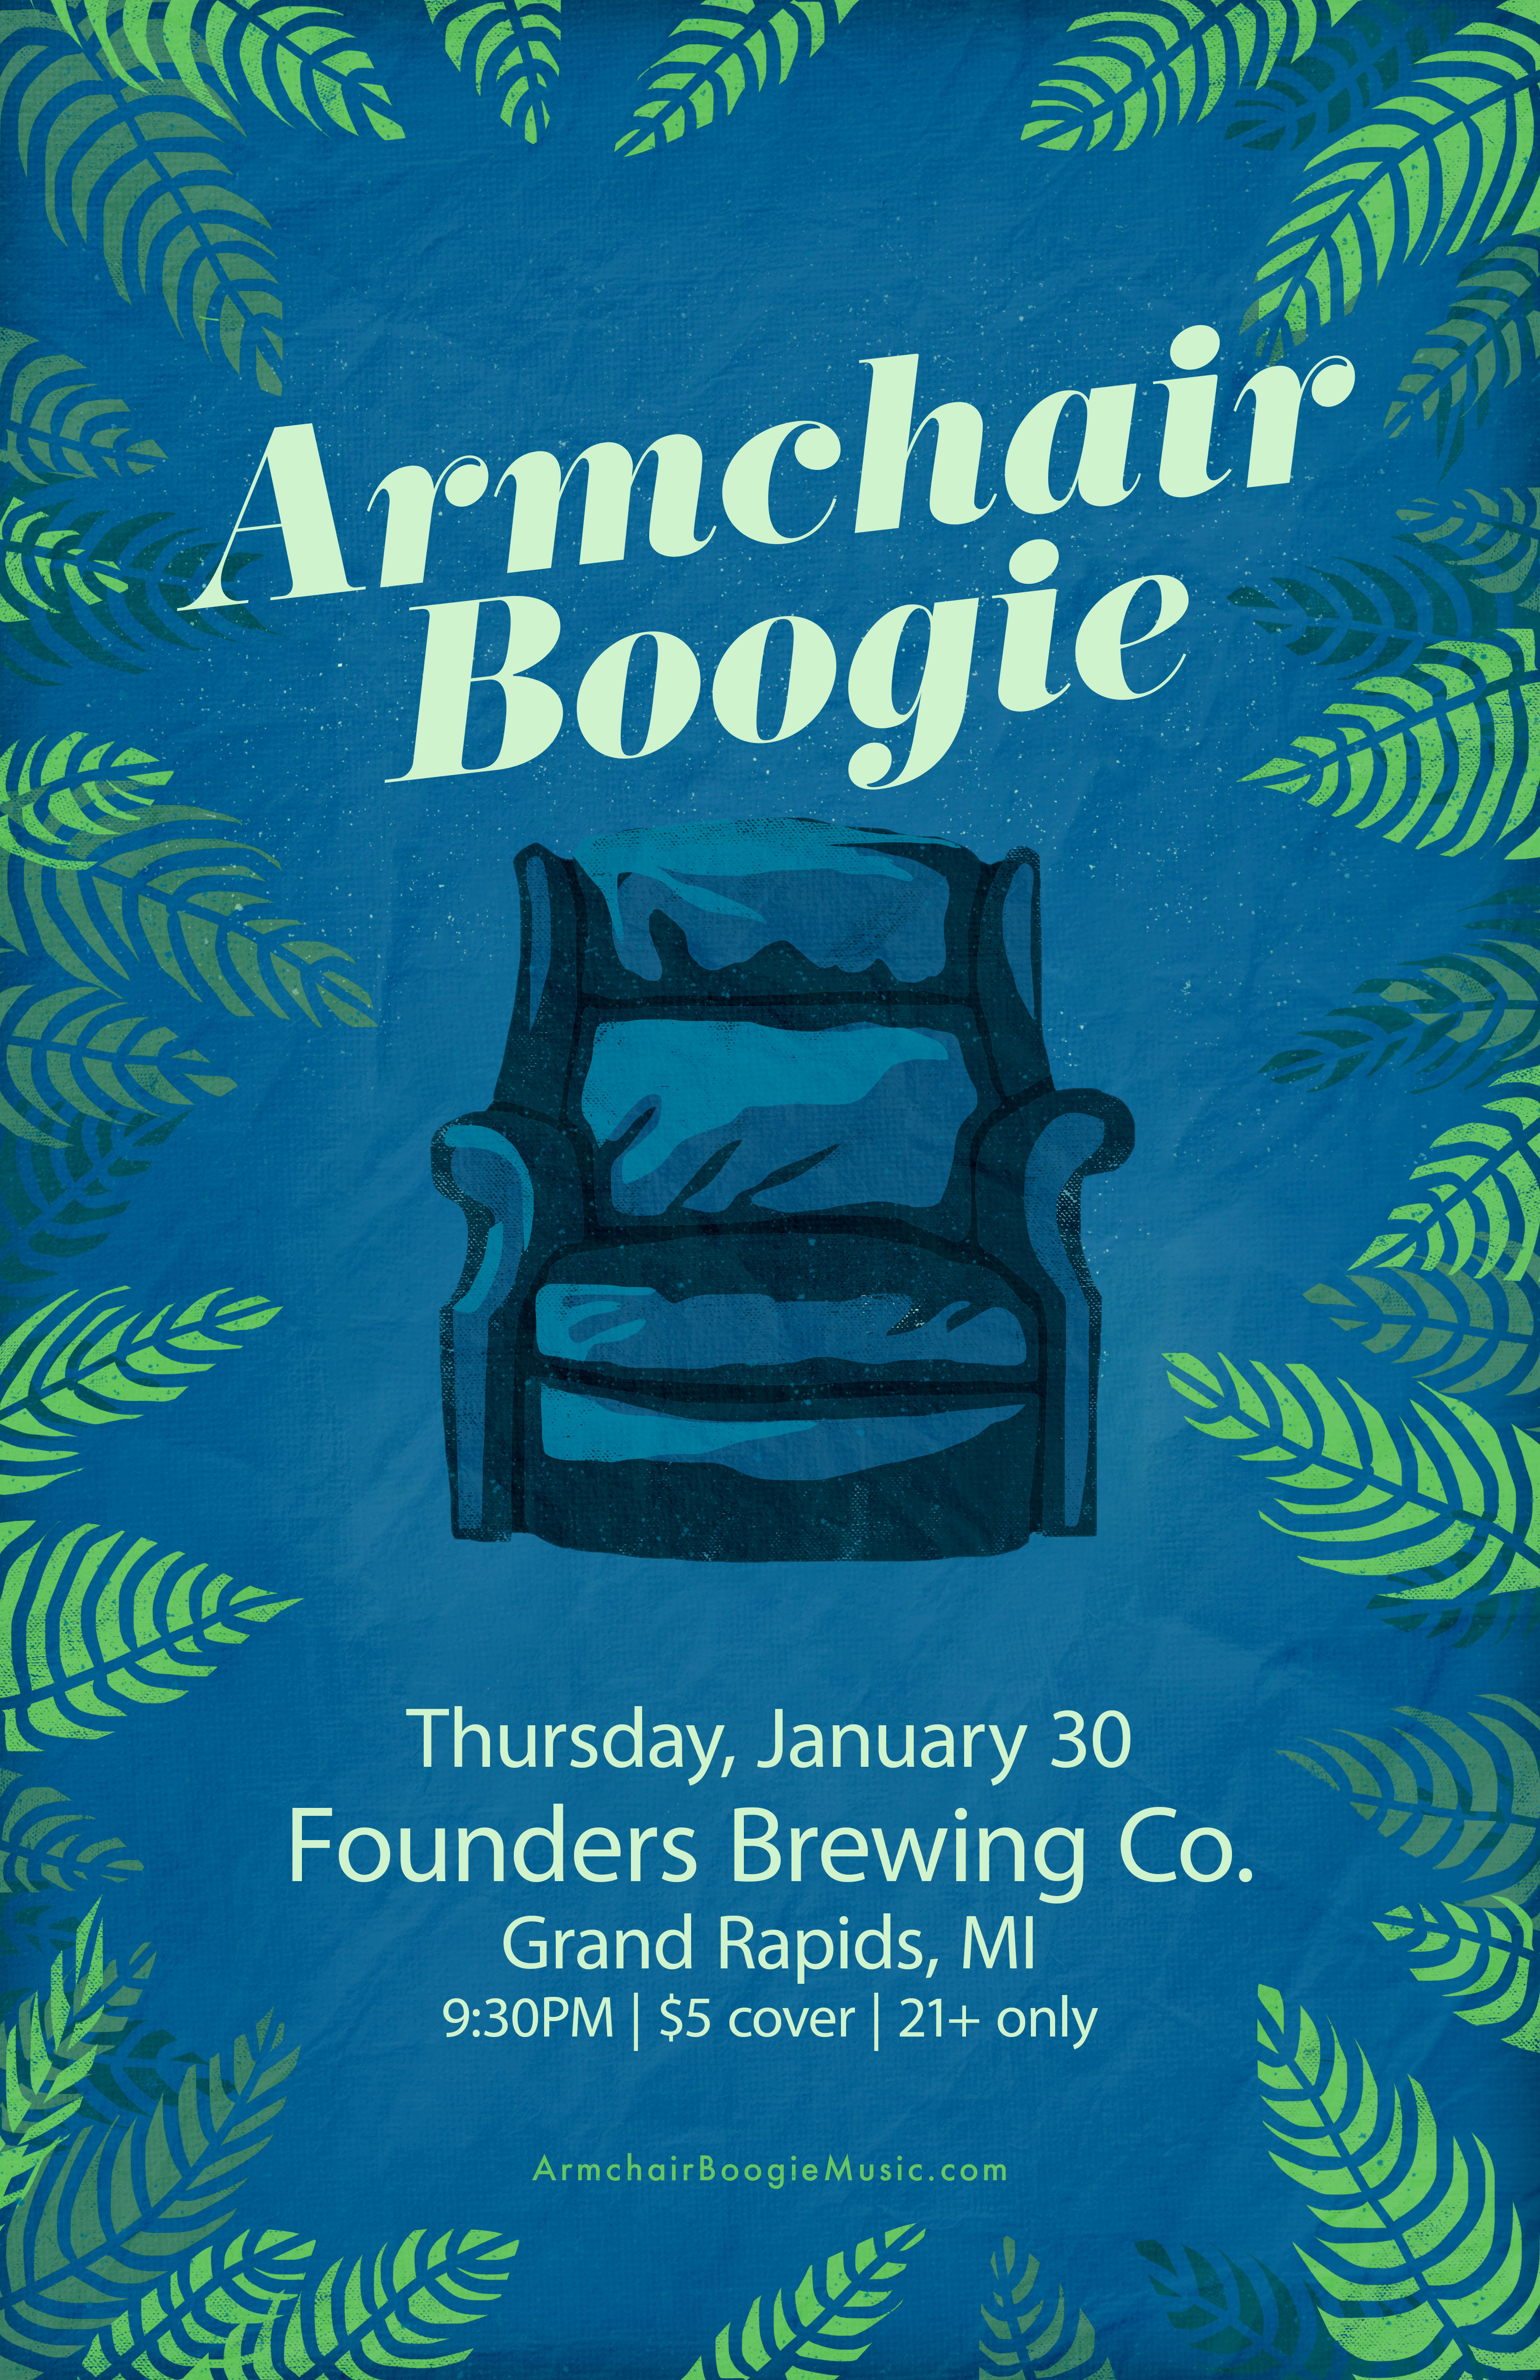 Amrchair Boogie event poster hosted by Founders Brewing Co.